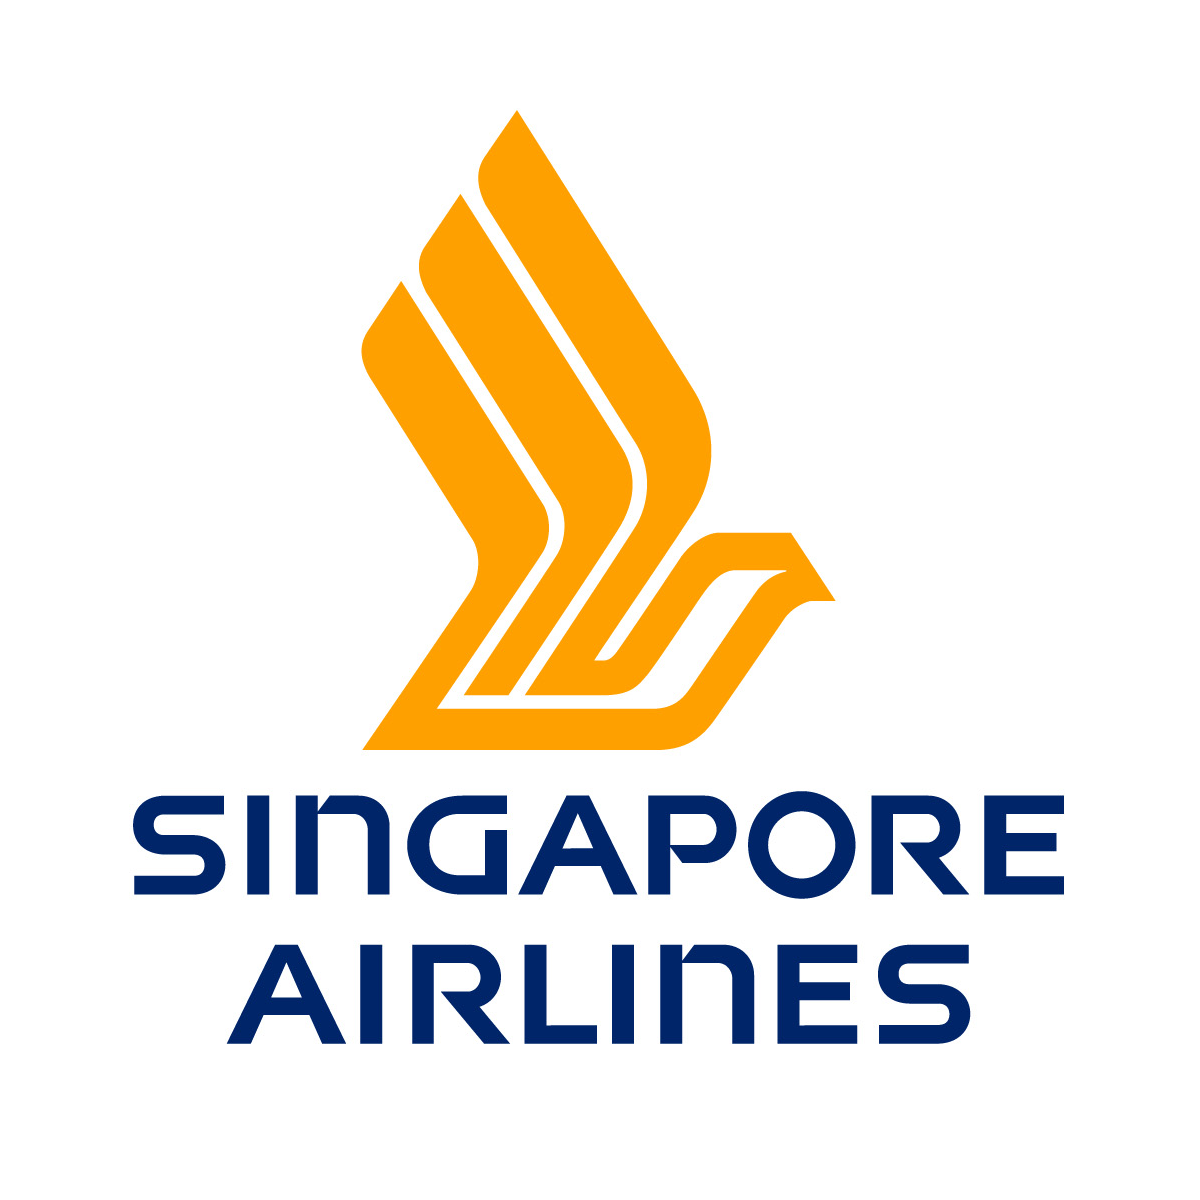 Singapore Airlines Logo - Singapore Airlines Vector PNG - Logo Singapore Airlines PNG